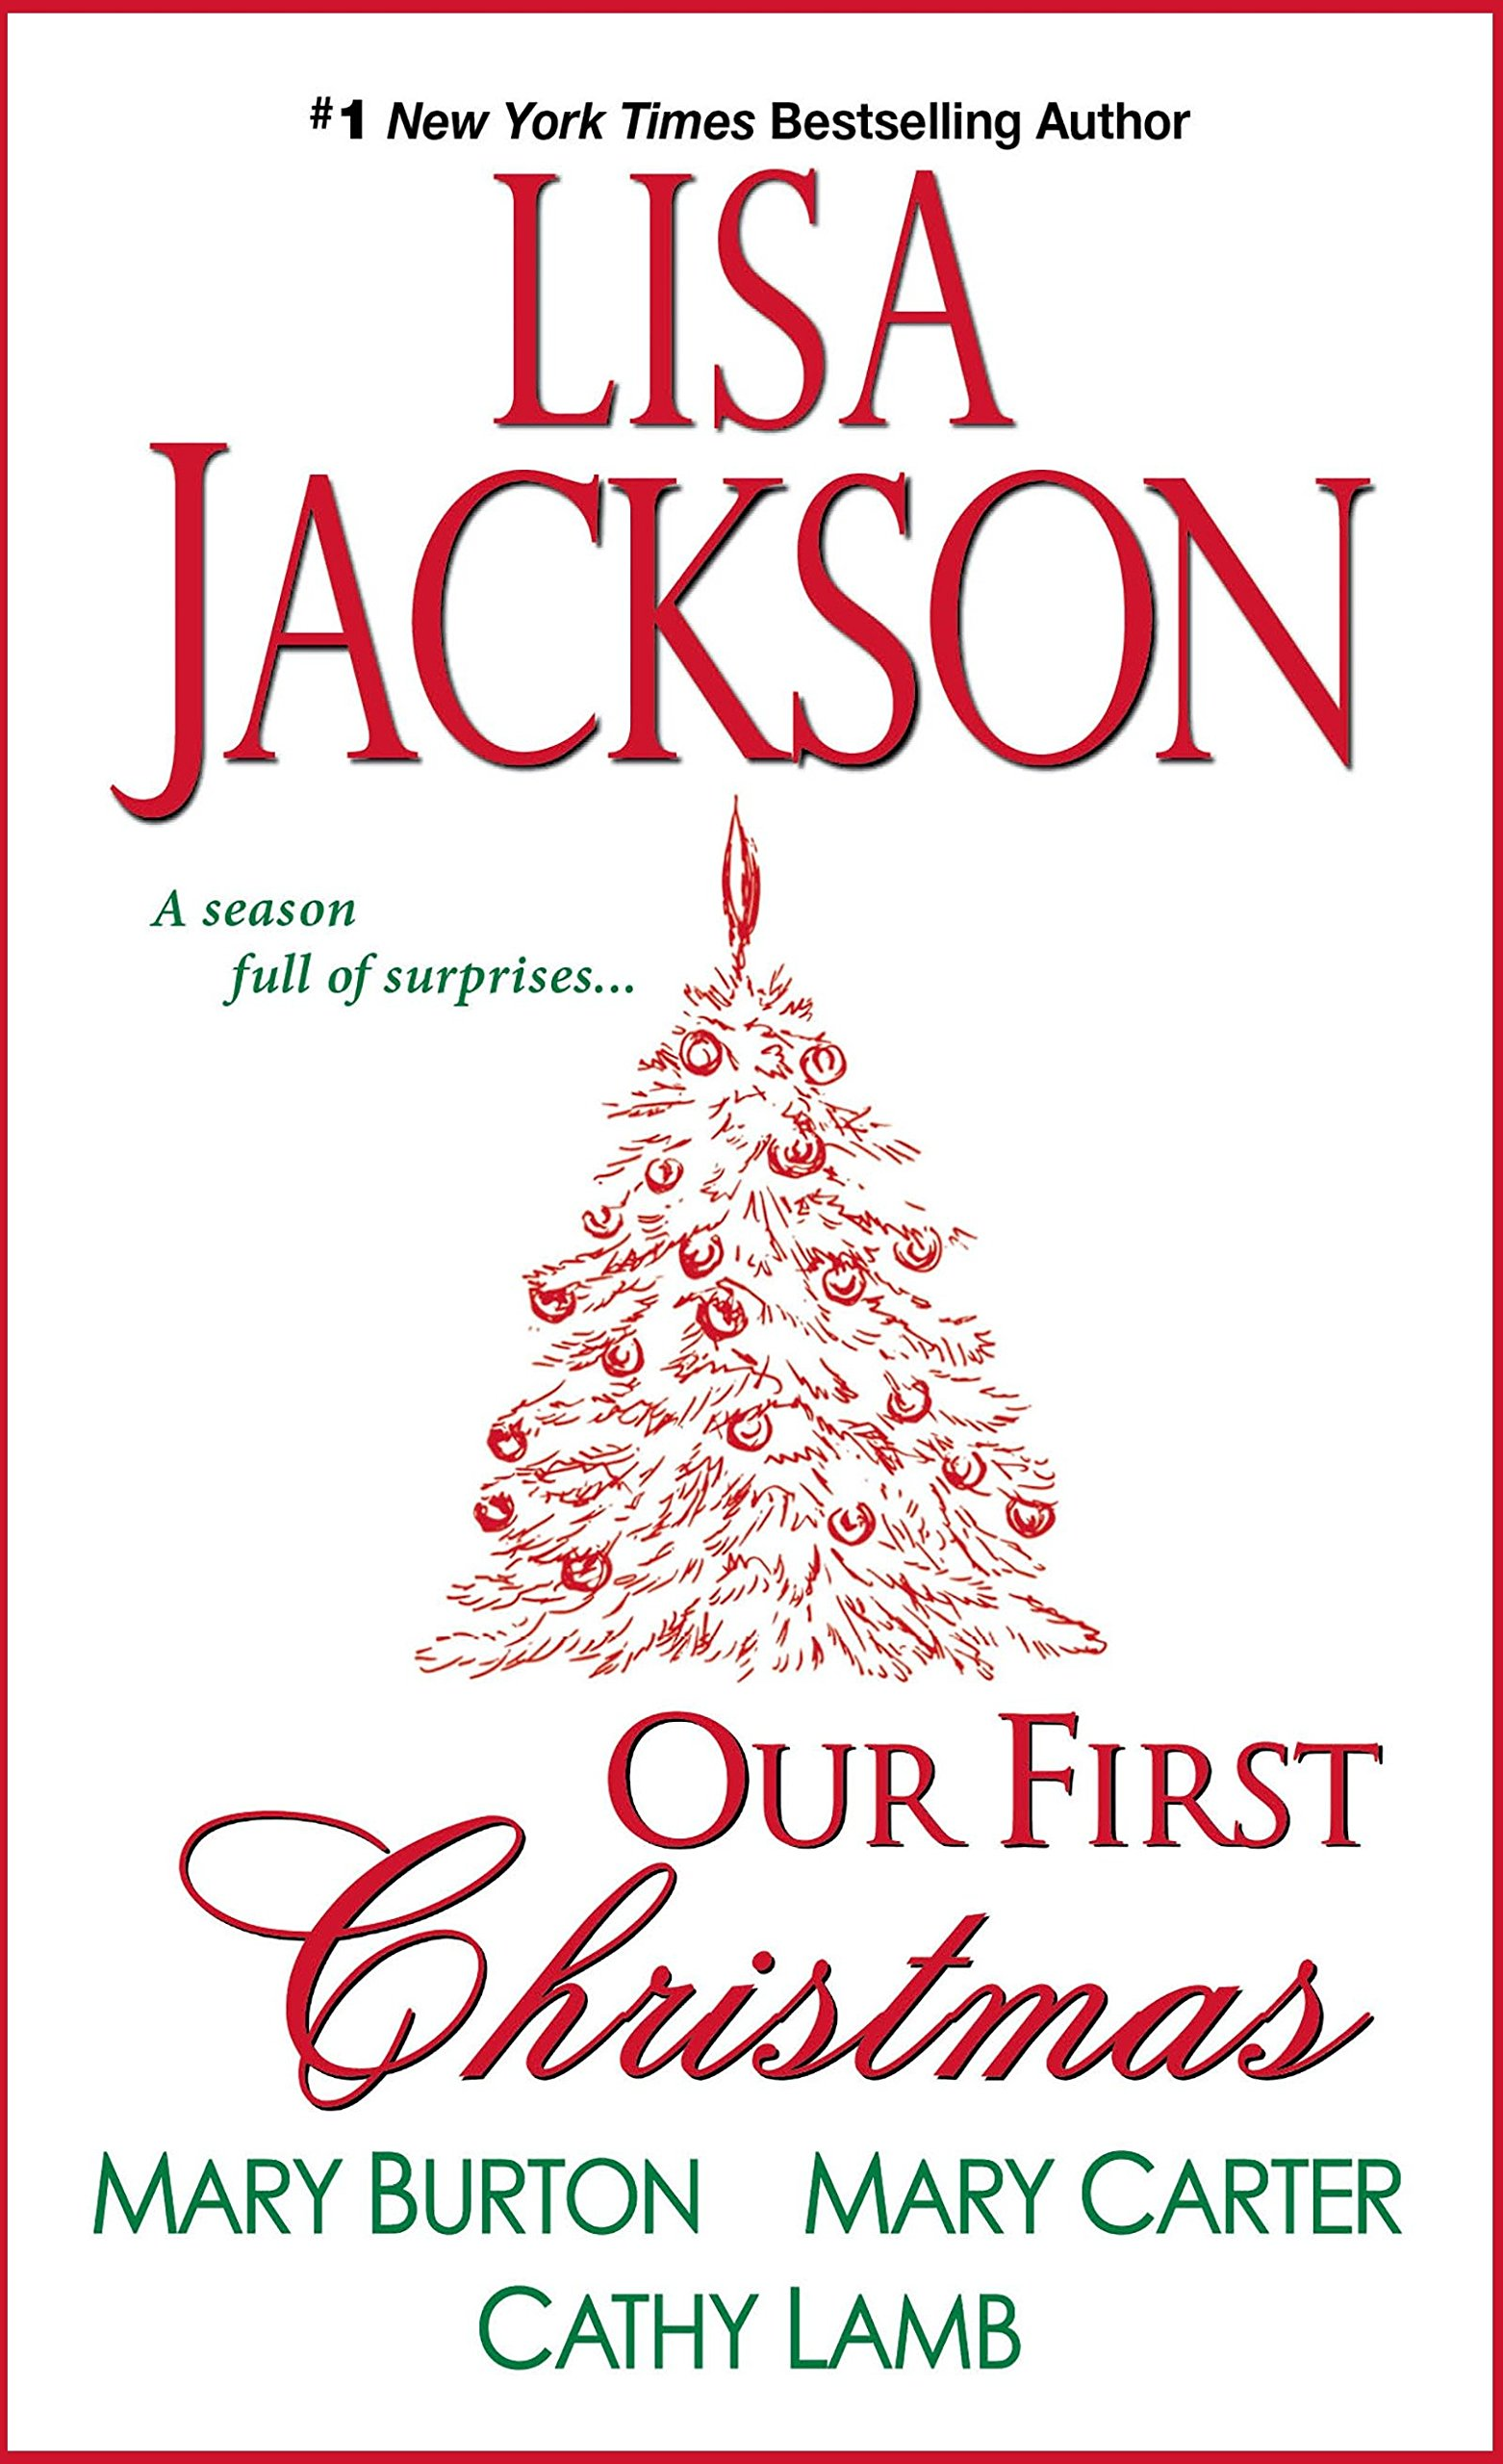 Amazoncom Our First Christmas (9781420125047) Lisa Jackson, Mary Burton, Mary